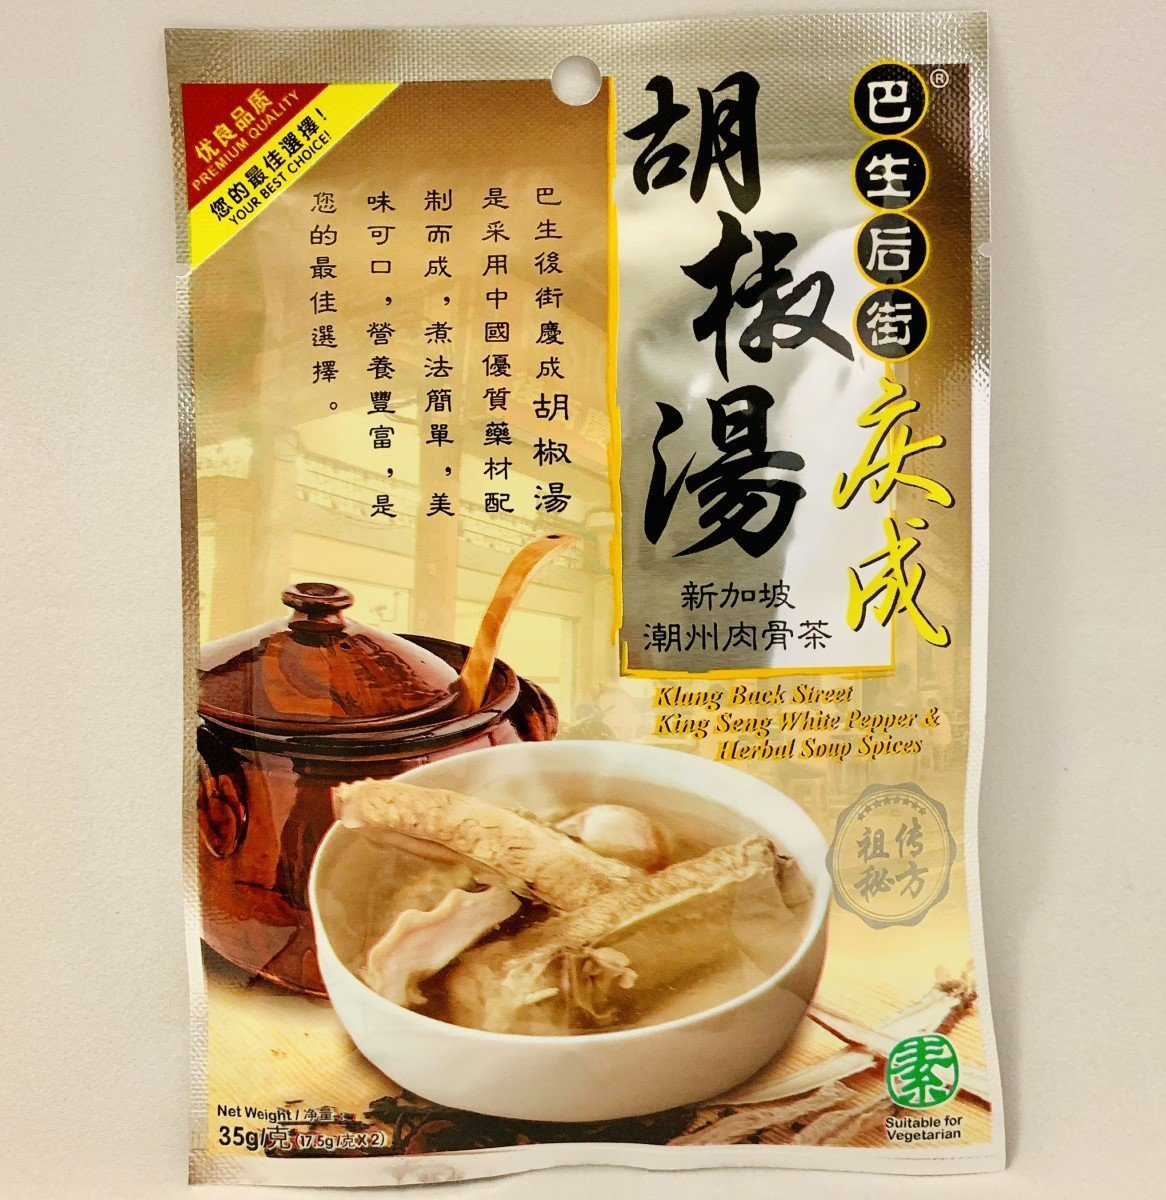 Malaysia White Pepper & Herbal Soup Spices